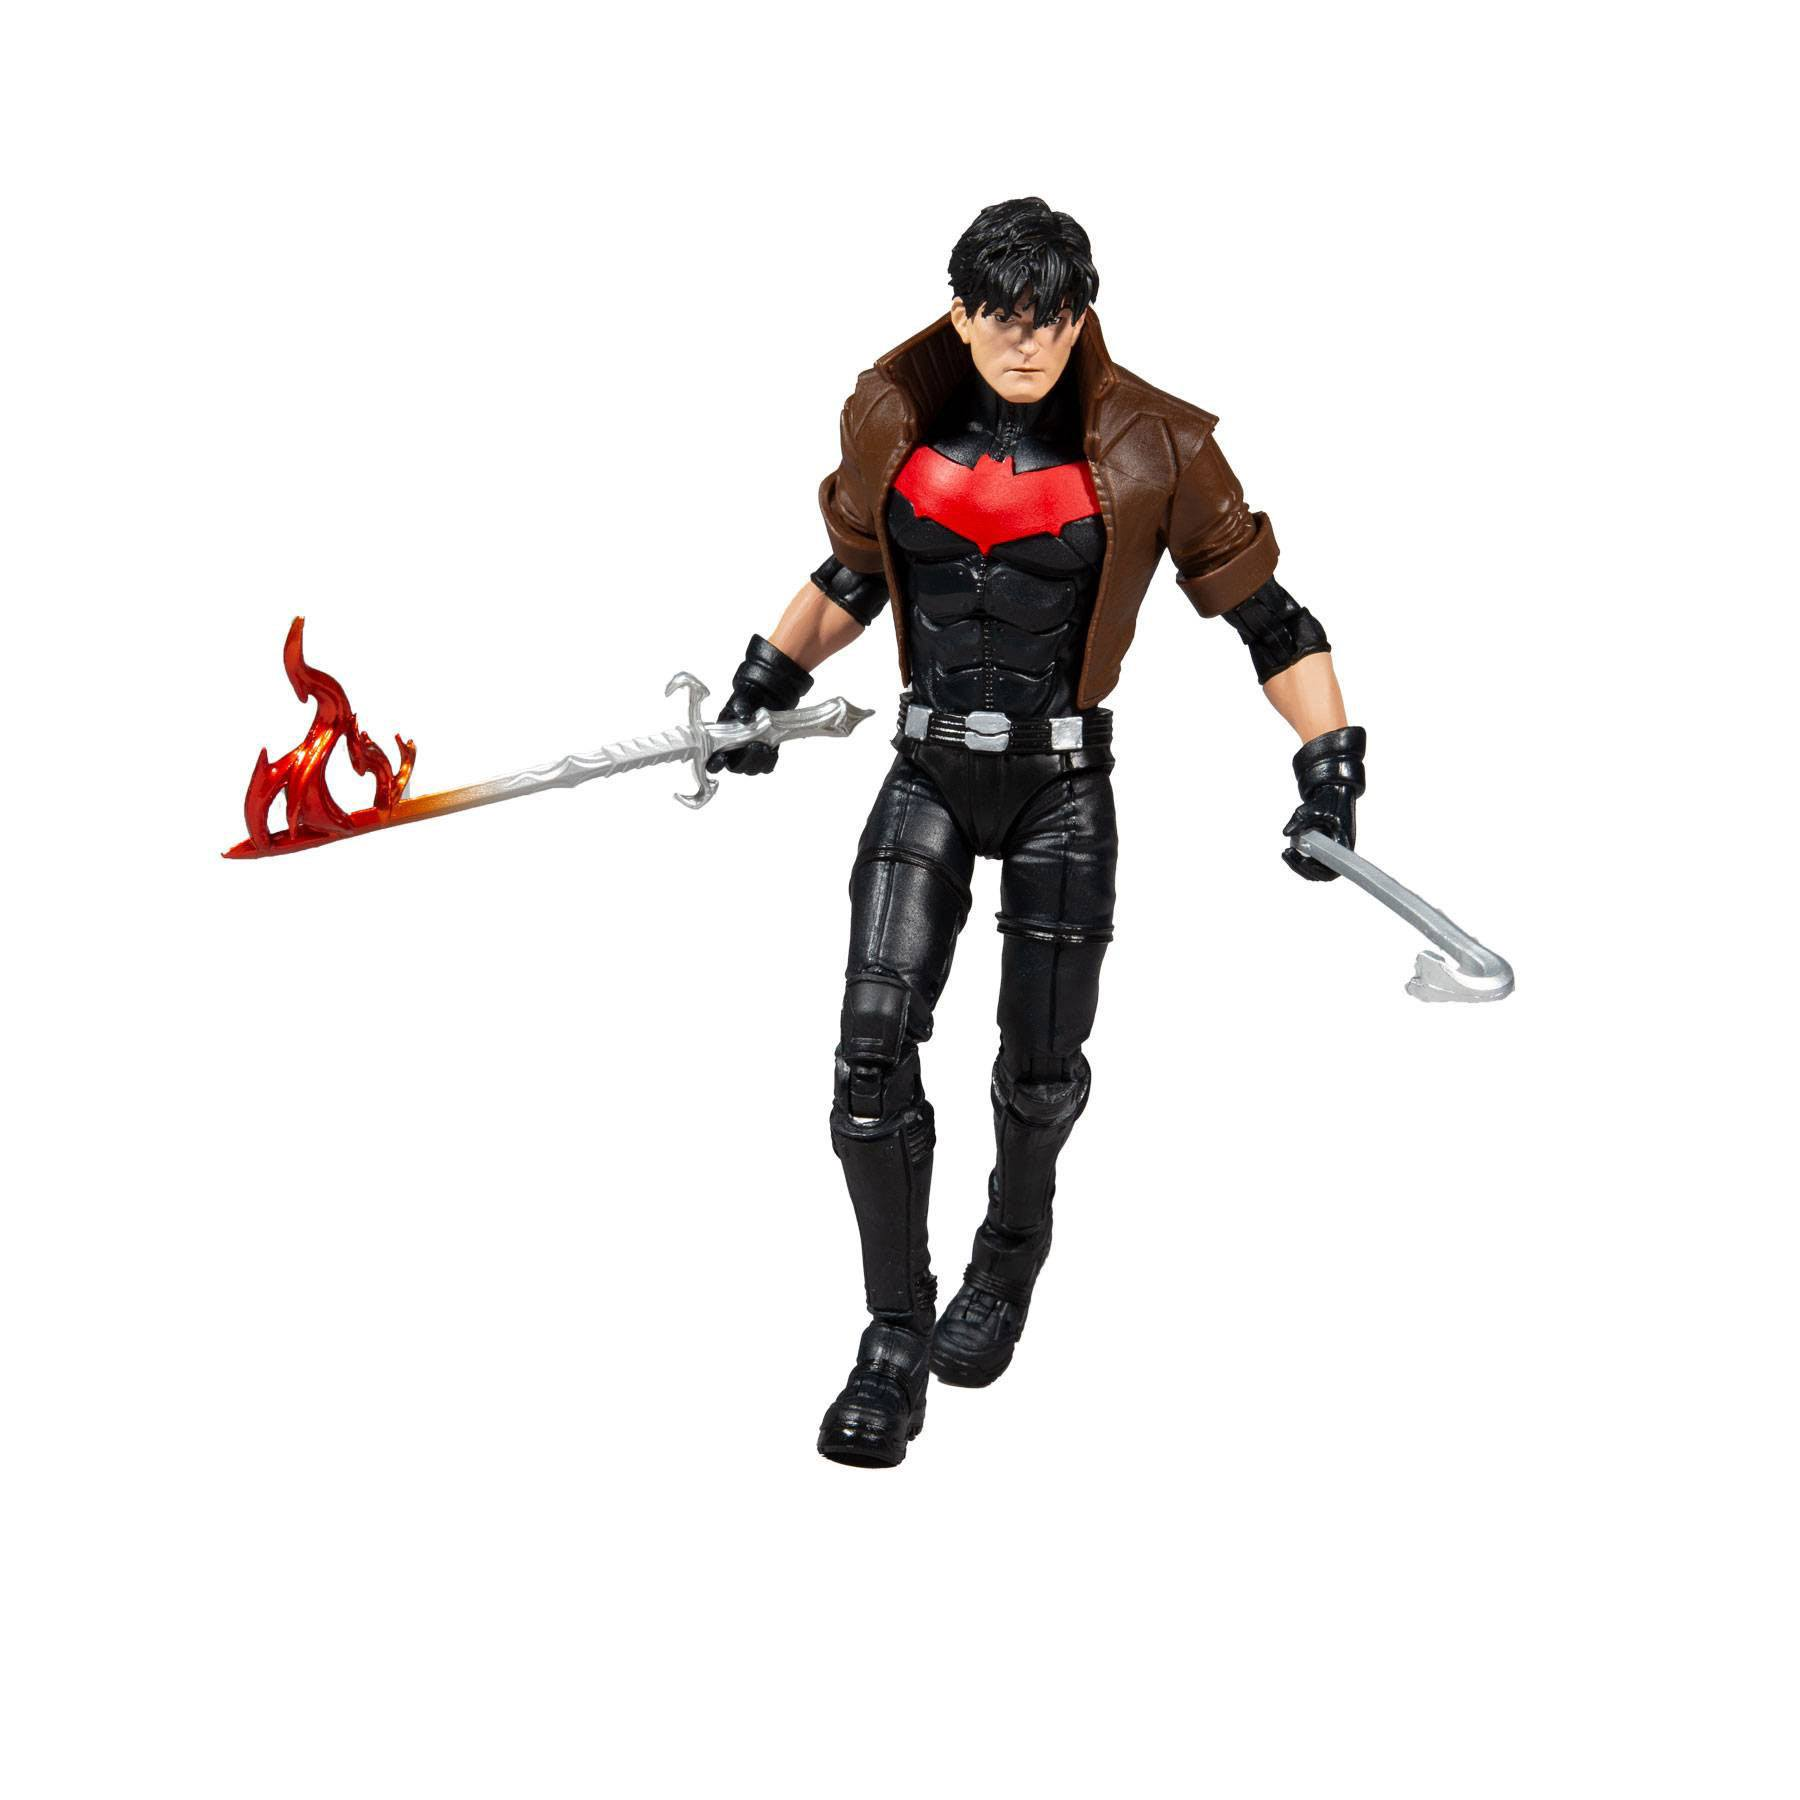 The New 52 DC Multiverse Actionfigur Red Hood Unmasked (Gold Label) 18 cm MCF15170 787926151701